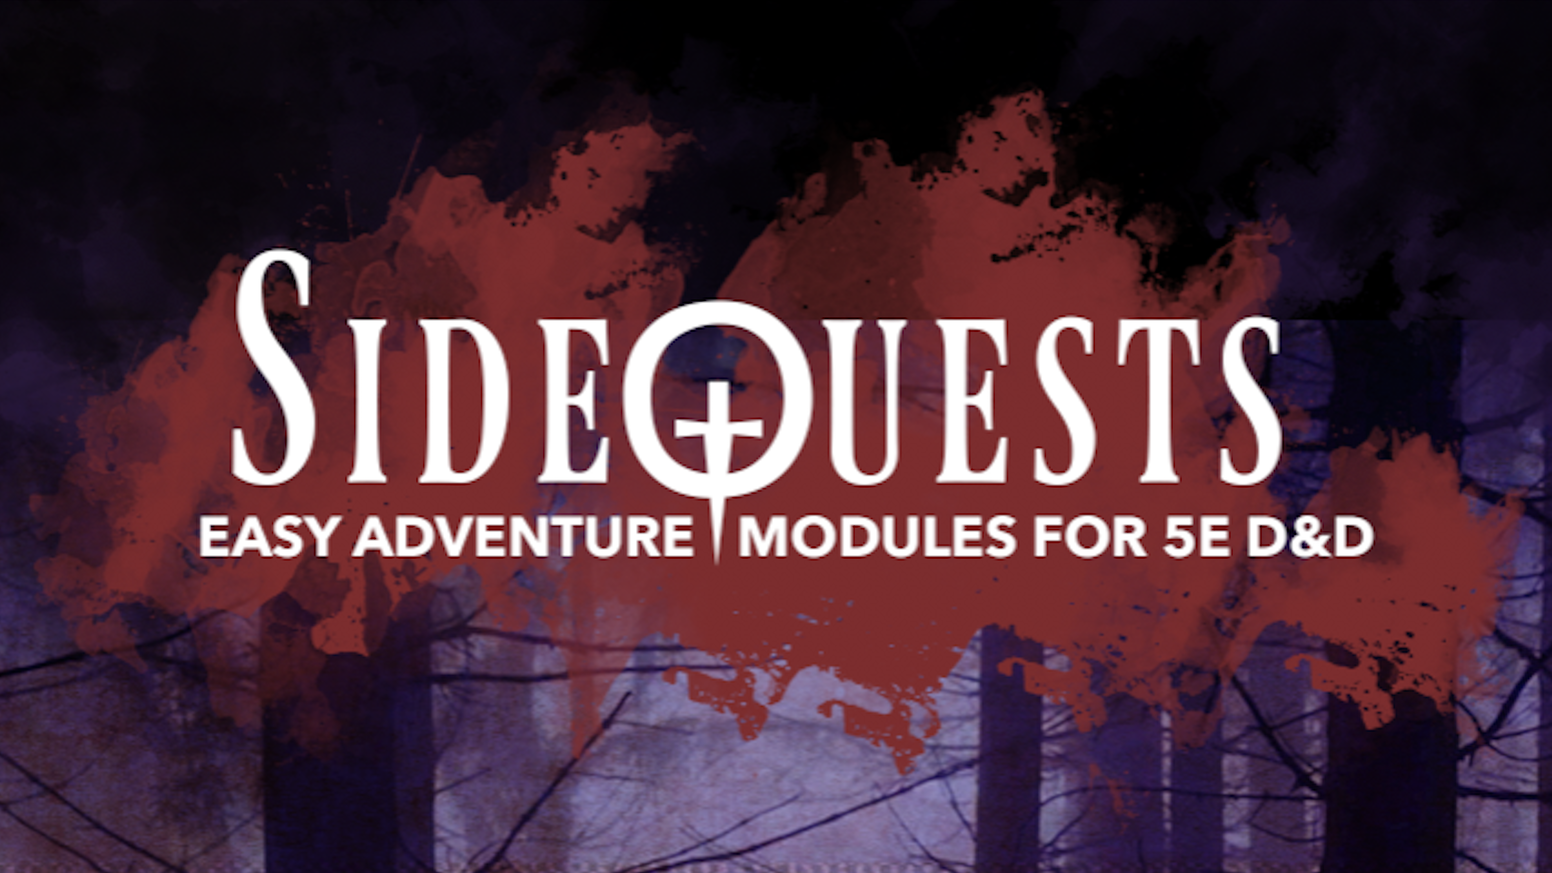 A collection of one-shot 5E adventures, designed to easily implement into any campaign setting.